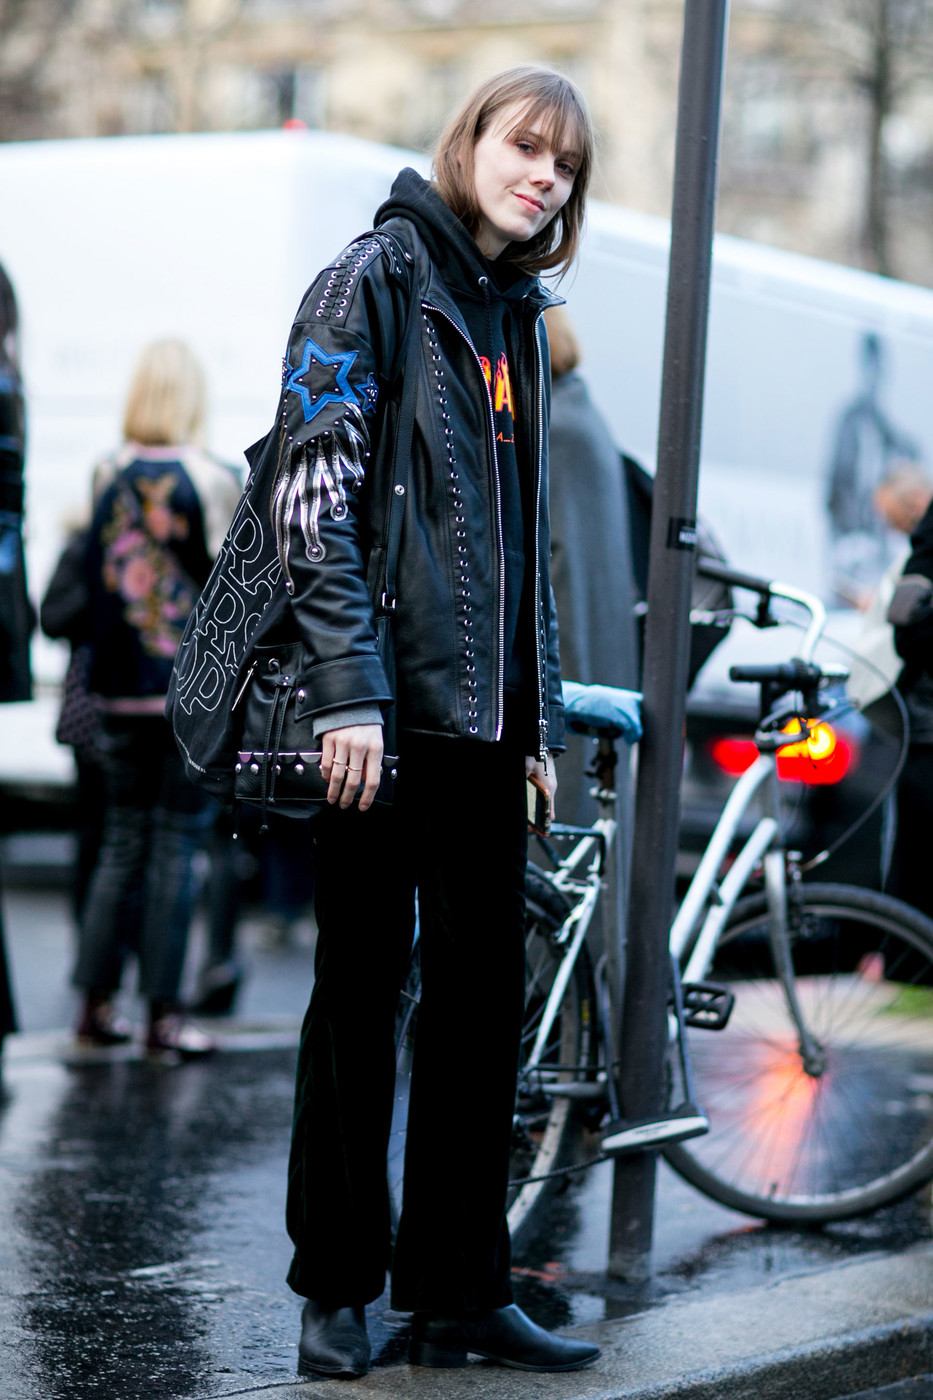 Street Style: Kiki Willems' Retro Rocker Look